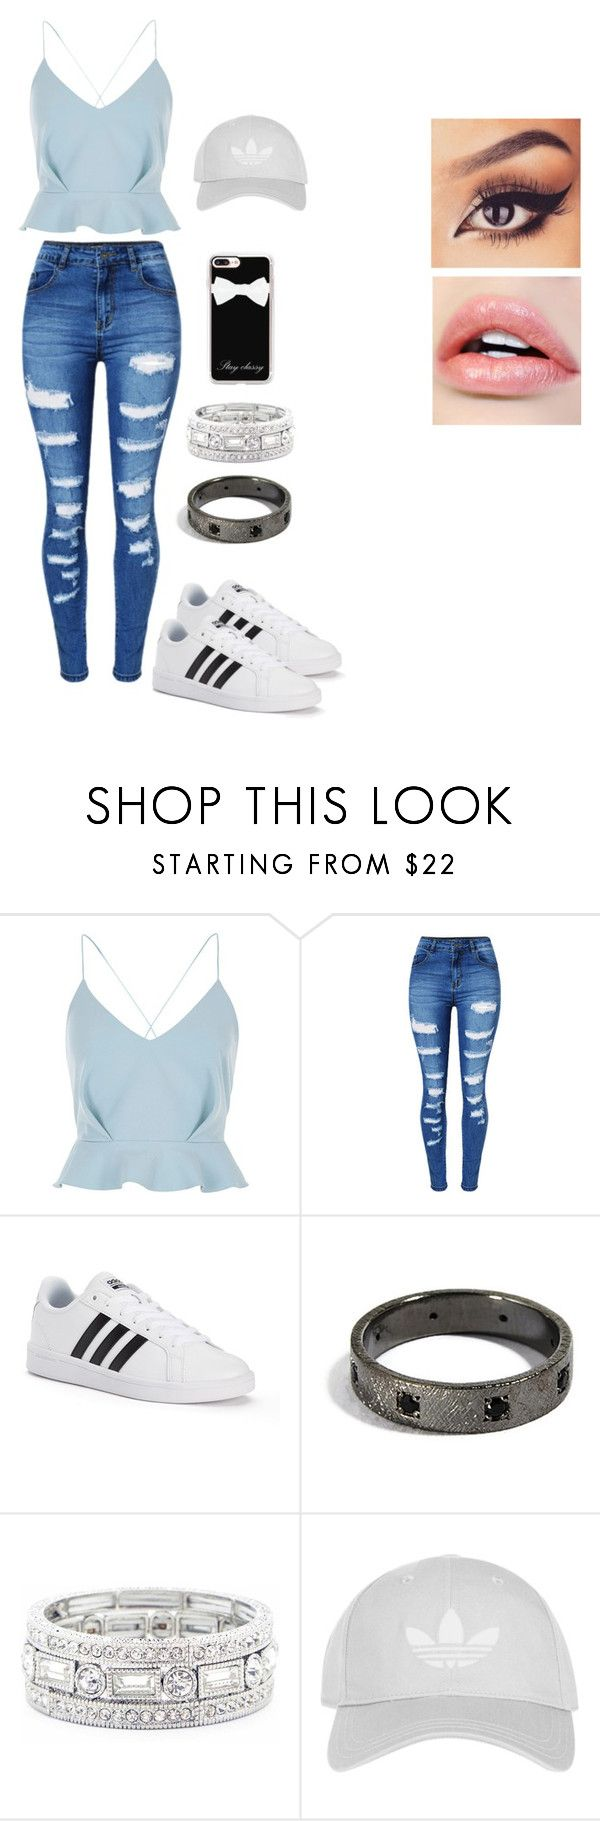 """""""Kayce Brewer Inspiration"""" by brauerisabelle on Polyvore featuring River Island, WithChic, adidas, Sole Society, Topshop and Casetify"""